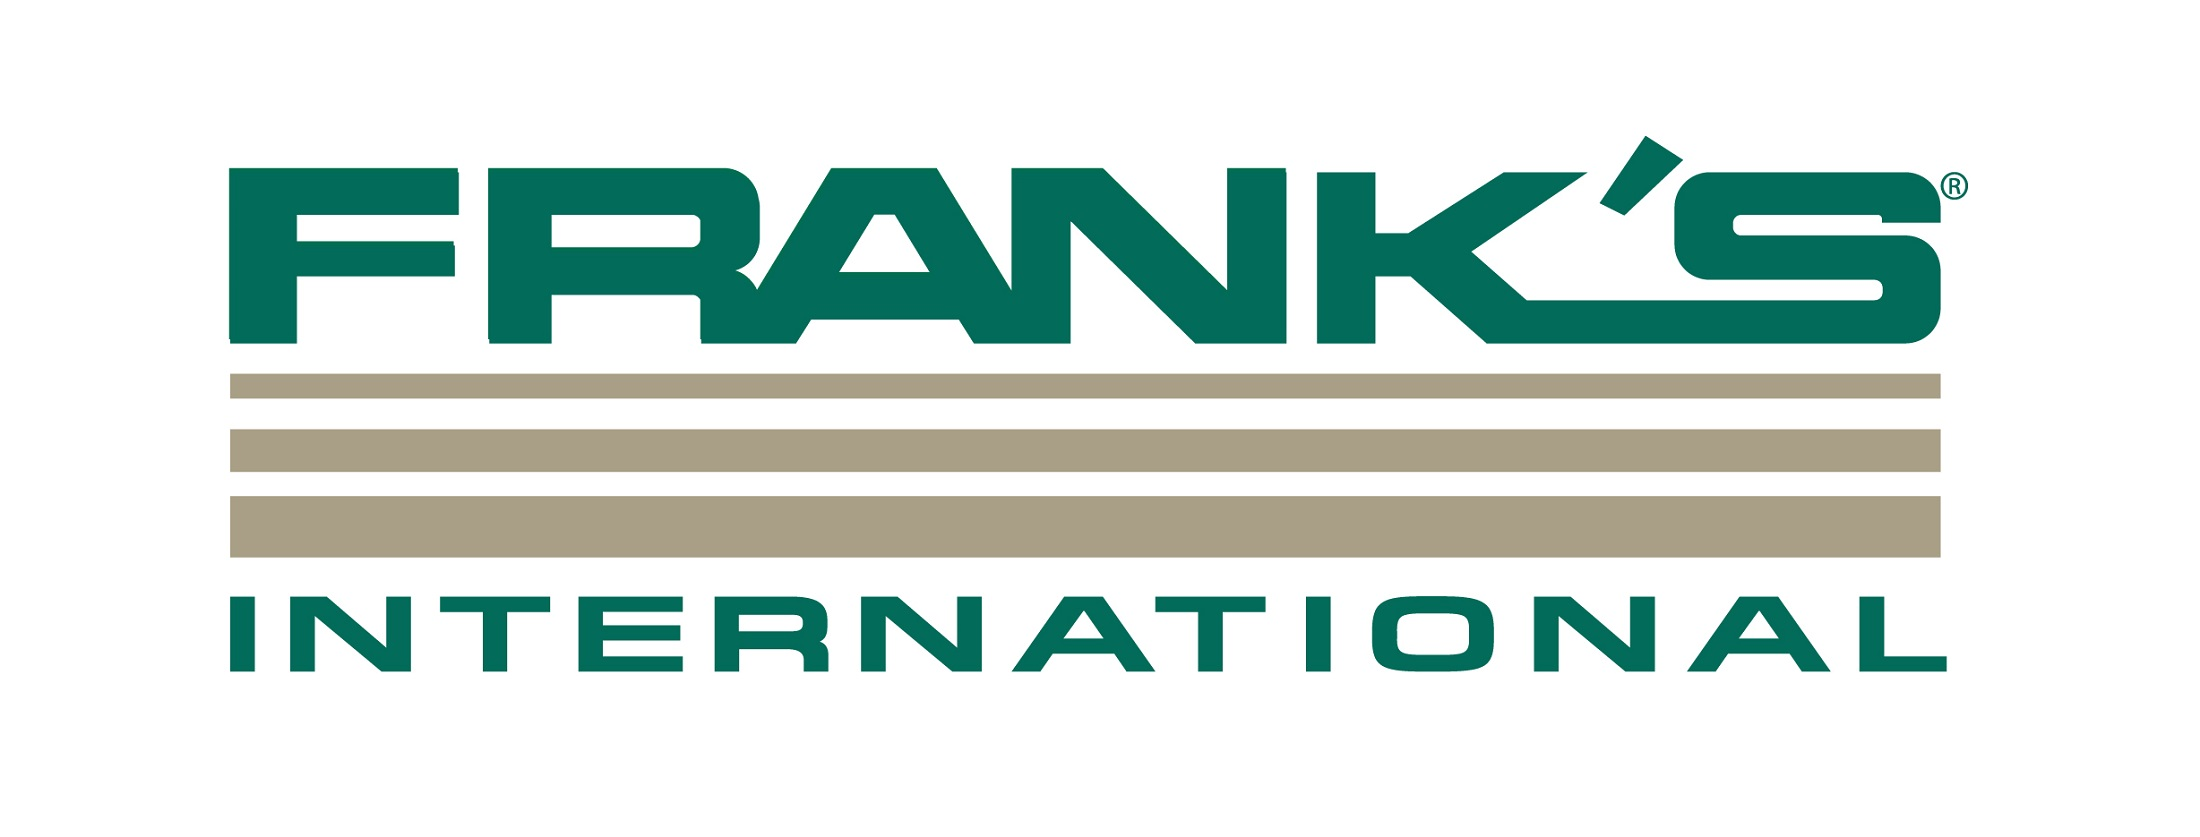 Frank's International N.V. Announces Fourth Quarter and Full Year 2018 Results